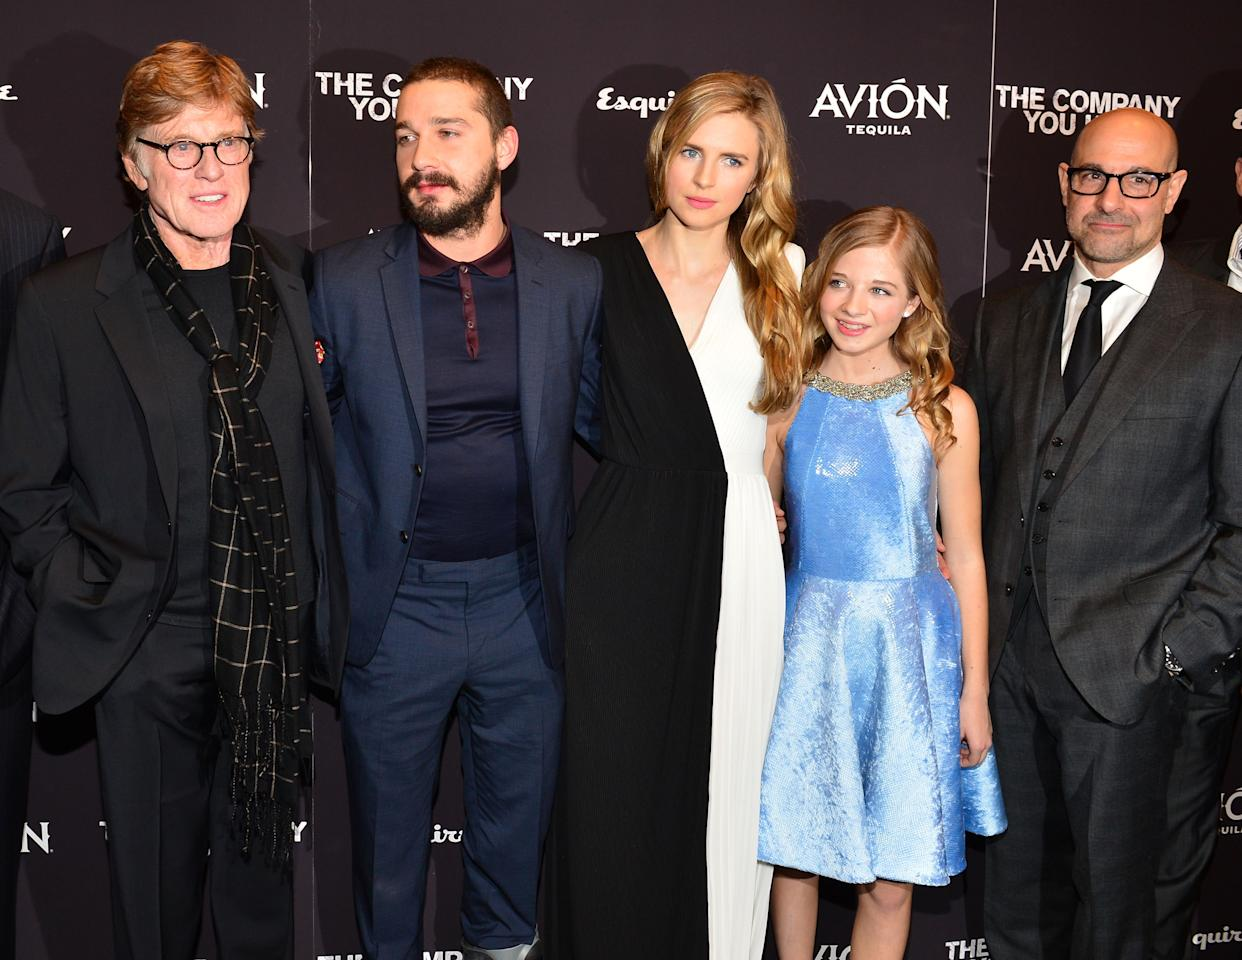 """NEW YORK, NY - APRIL 01:  (L-R) Director\Actor Robert Redford, Shia LaBeouf, Brit Marling, Jackie Evancho and Stanley Tucci attend """"The Company You Keep"""" New York Premiere at The Museum of Modern Art on April 1, 2013 in New York City.  (Photo by Larry Busacca/Getty Images)"""